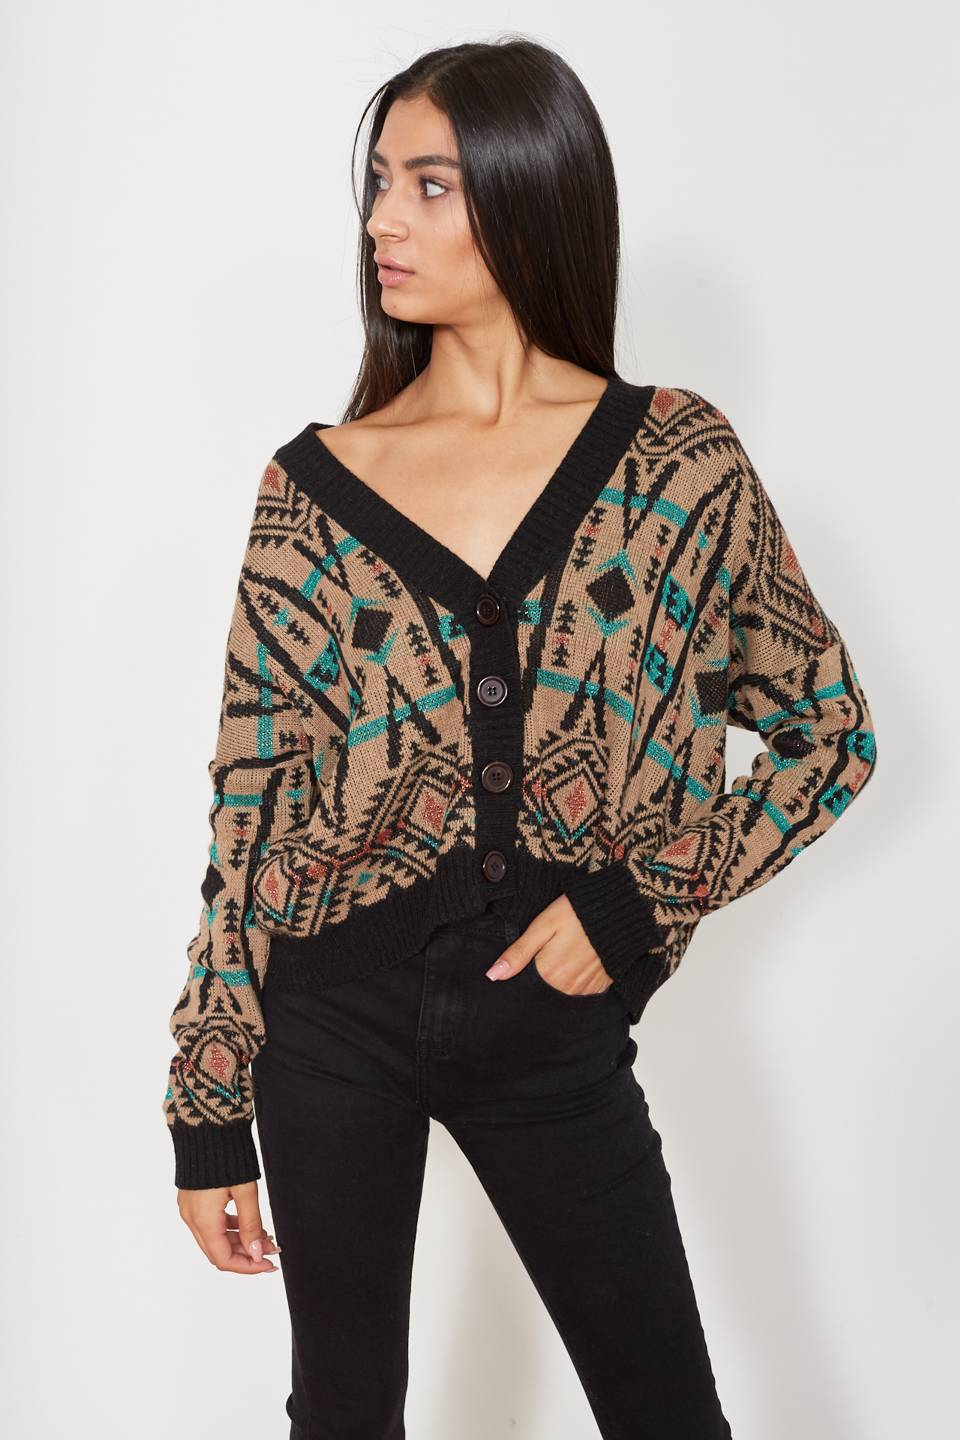 Cardigan over nero - Autunno 2019 - Inverno 2020 | Brend